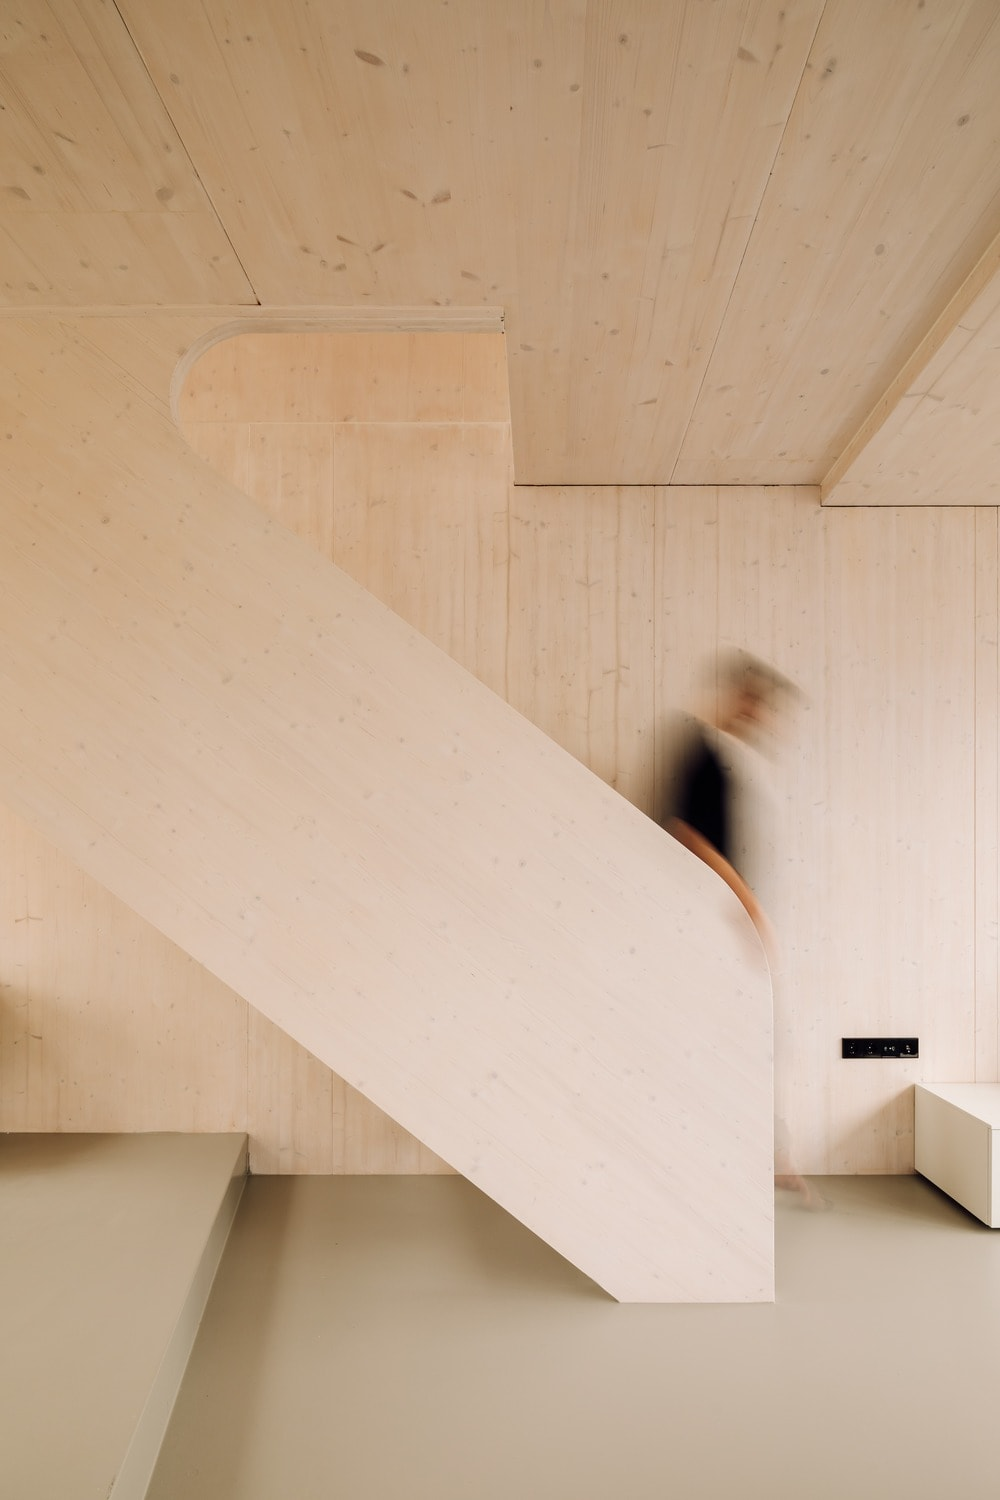 This is a close look at the staircase that has a low woodenborder that makes it blend with the walls and ceiling.